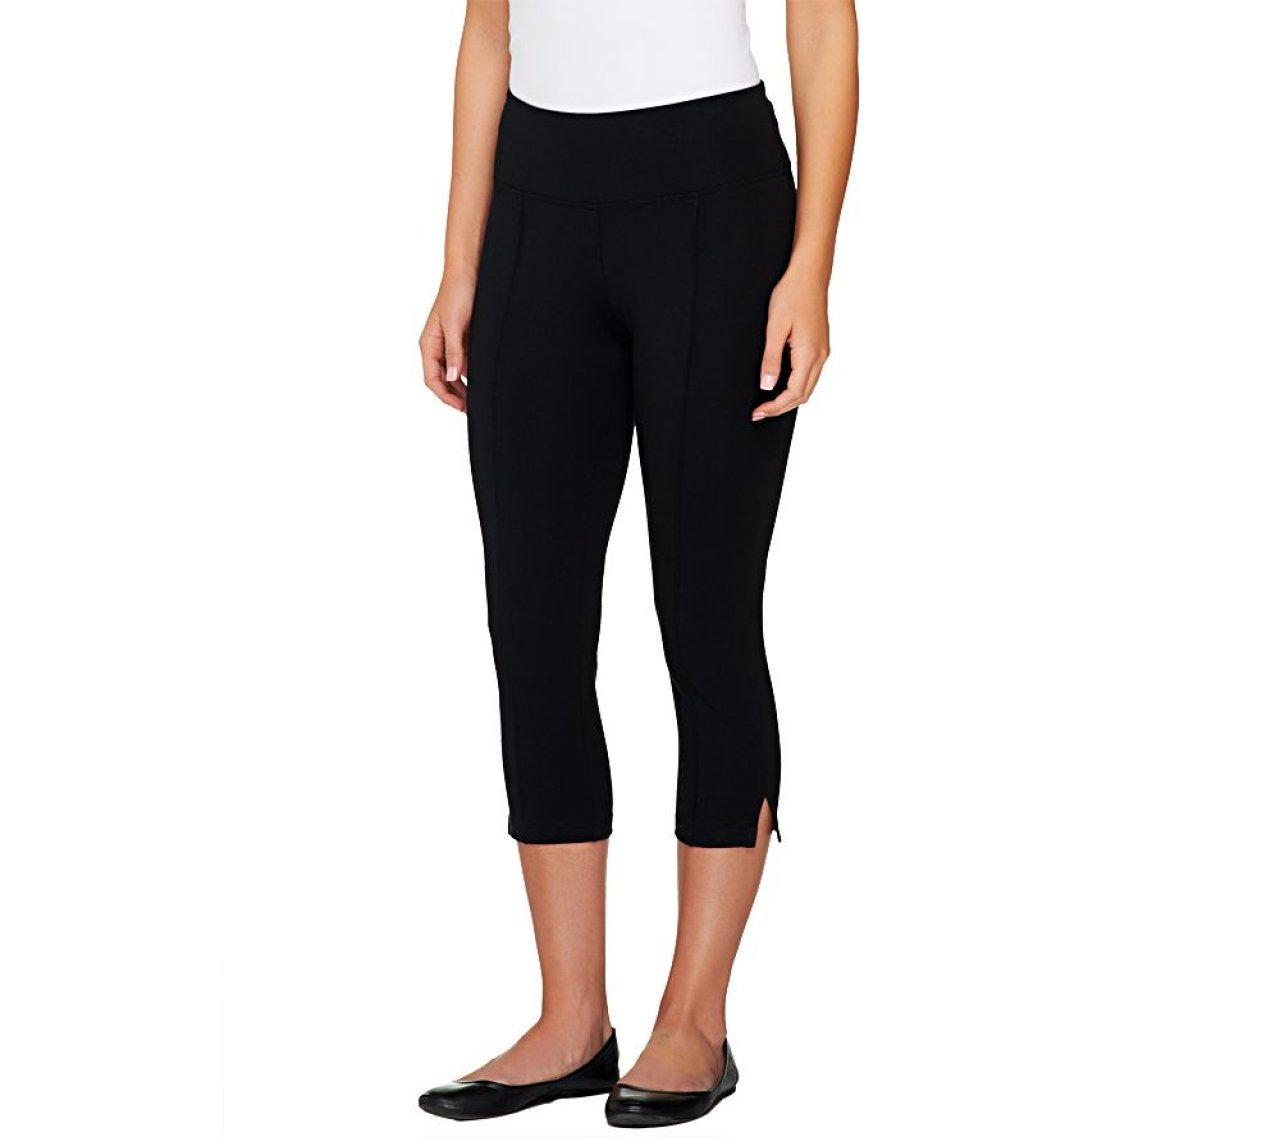 maurices women's dress pants